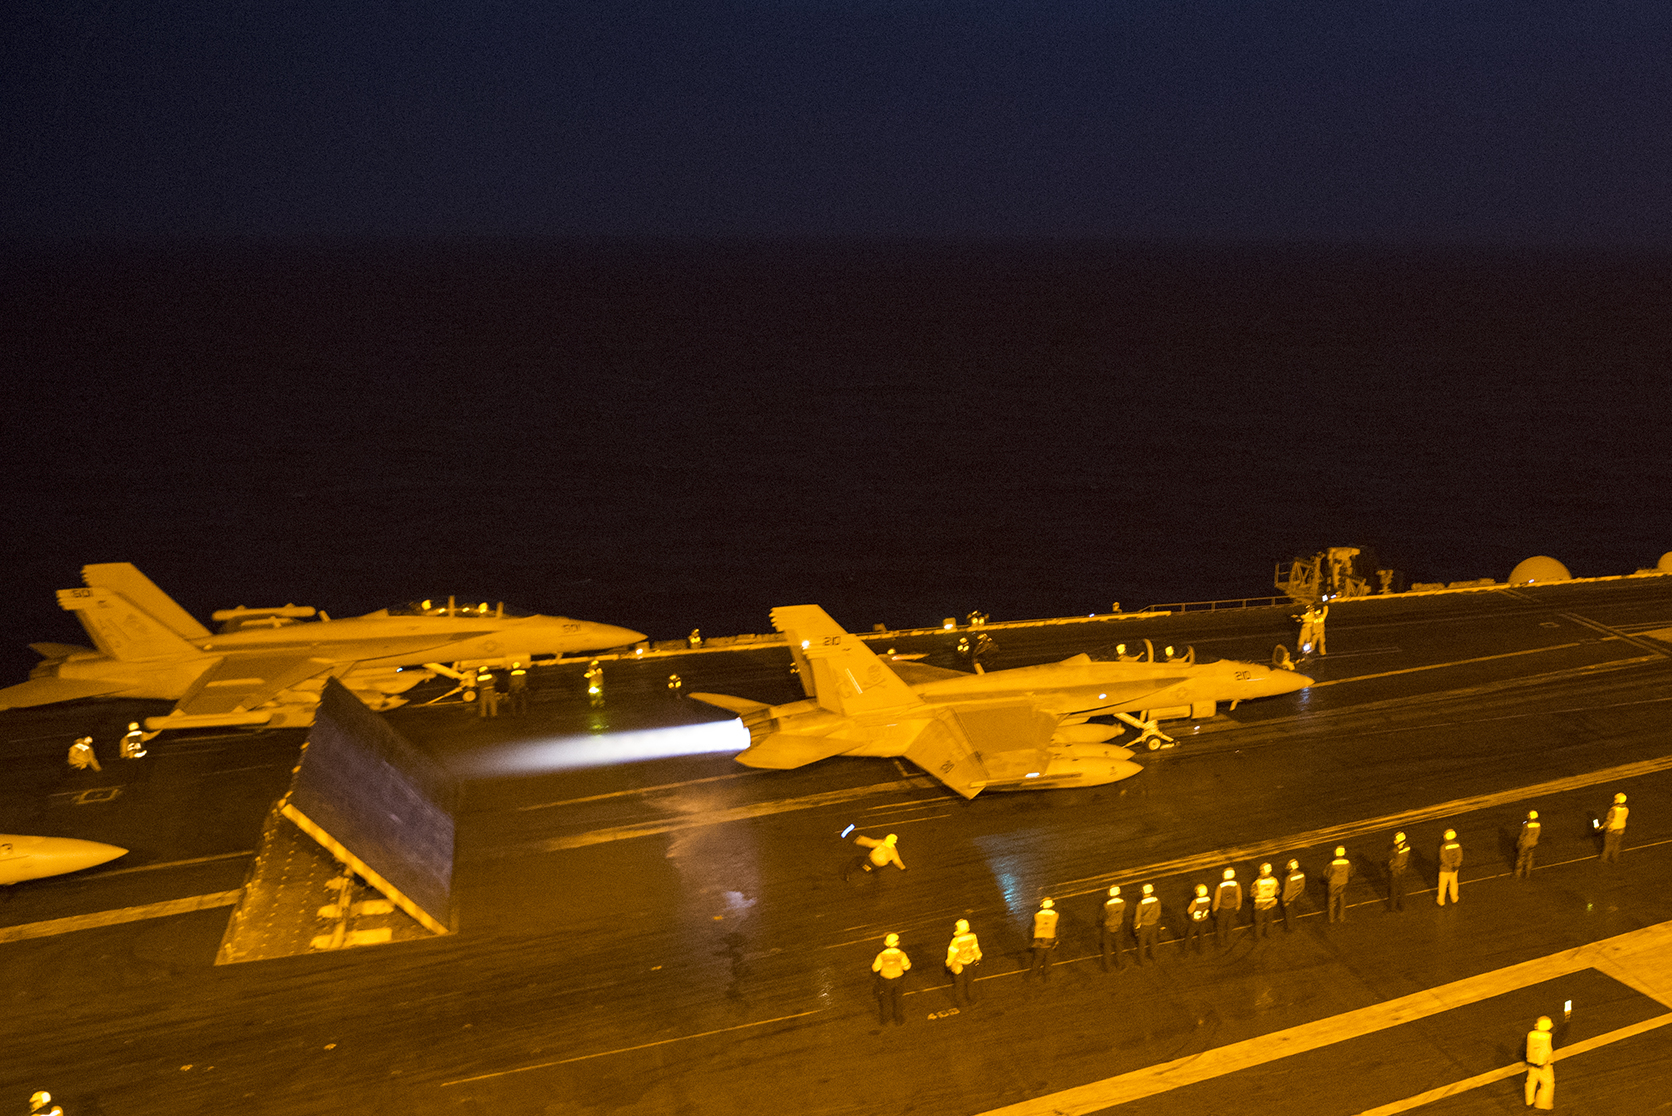 An F/A-18F Super Hornet launches from the flight deck of aircraft carrier USS Harry S. Truman (CVN 75) on Jan. 2, 2016. The Navy said operations in the Middle East have continued unimpeded despite diplomatic tensions between Iran and Saudi Arabia, Bahrain, UAE and Sudan. US Navy photo.